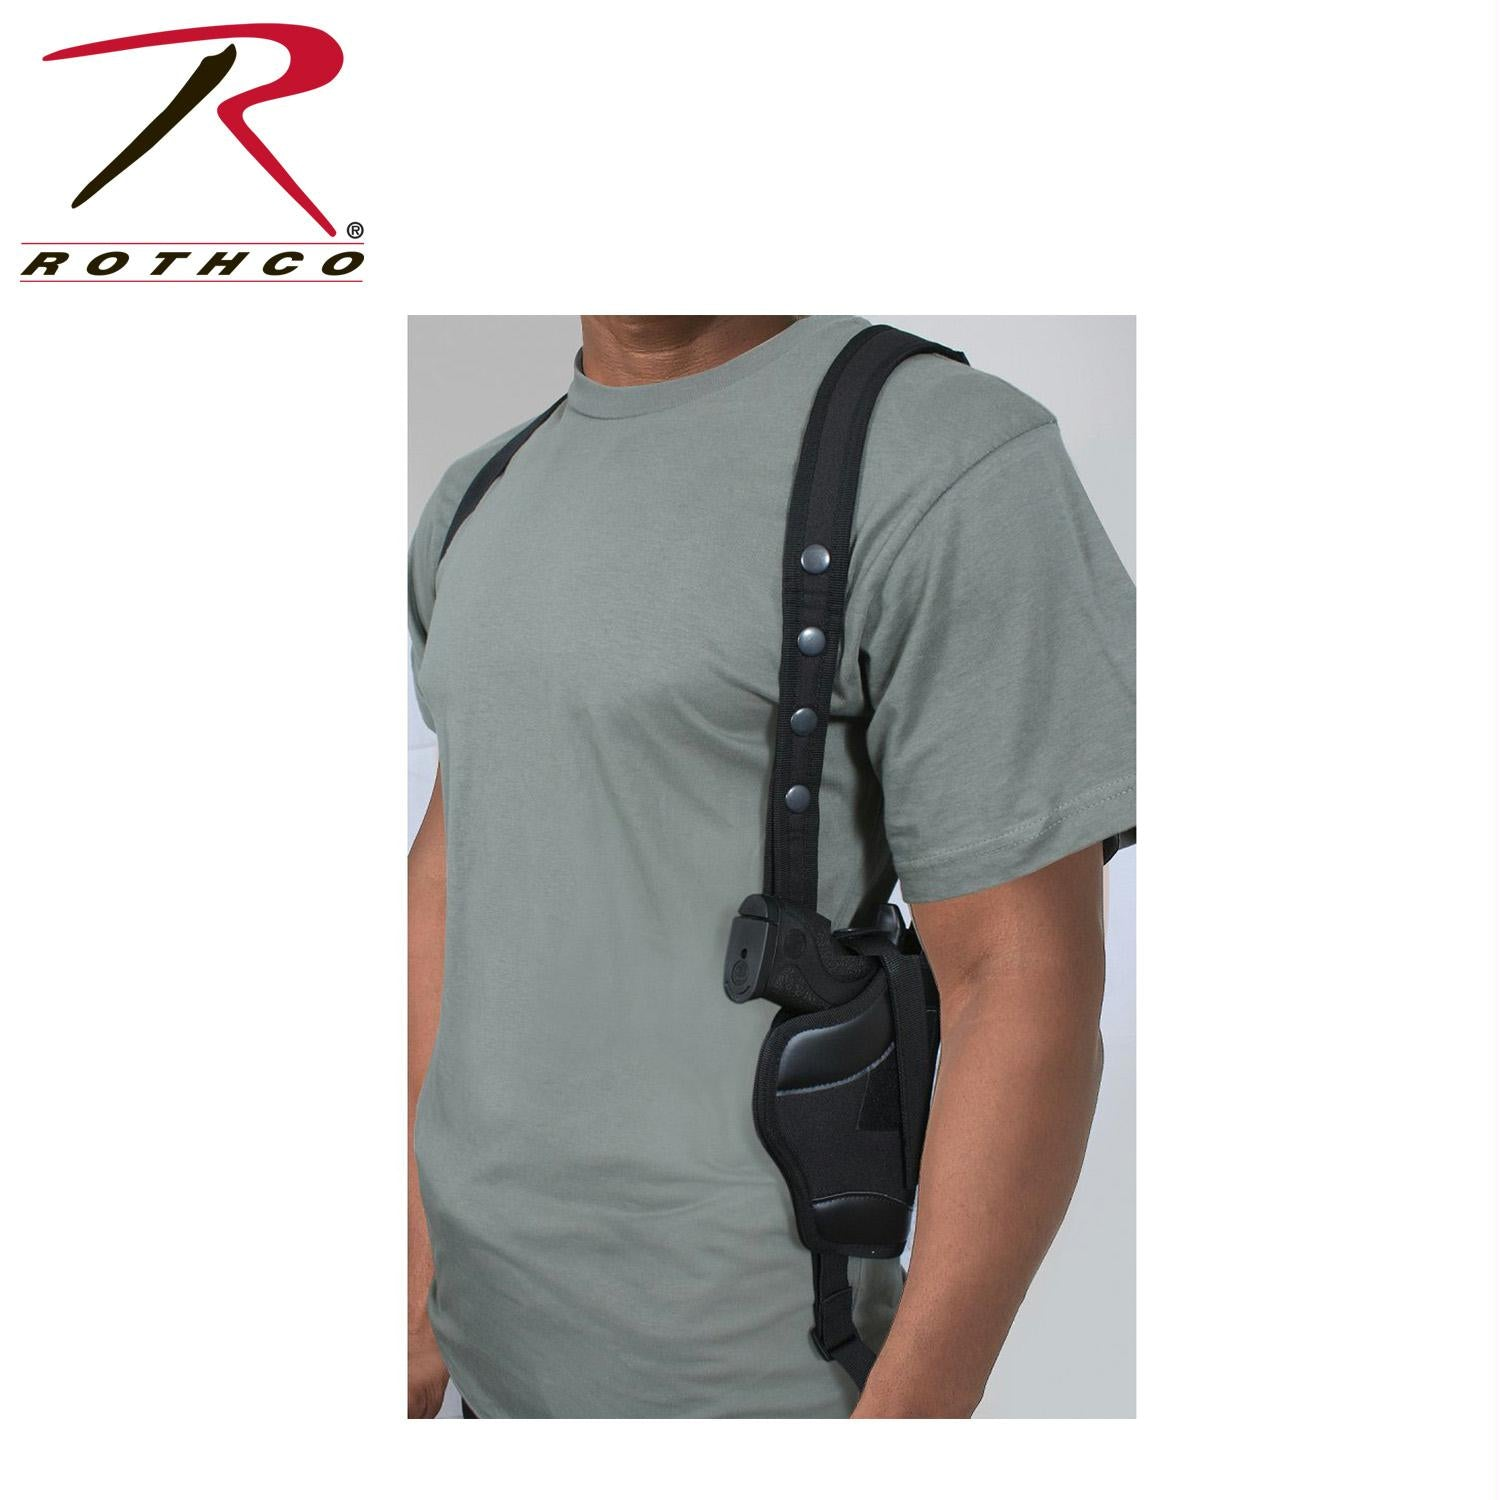 Rothco Black Undercover Shoulder Holster